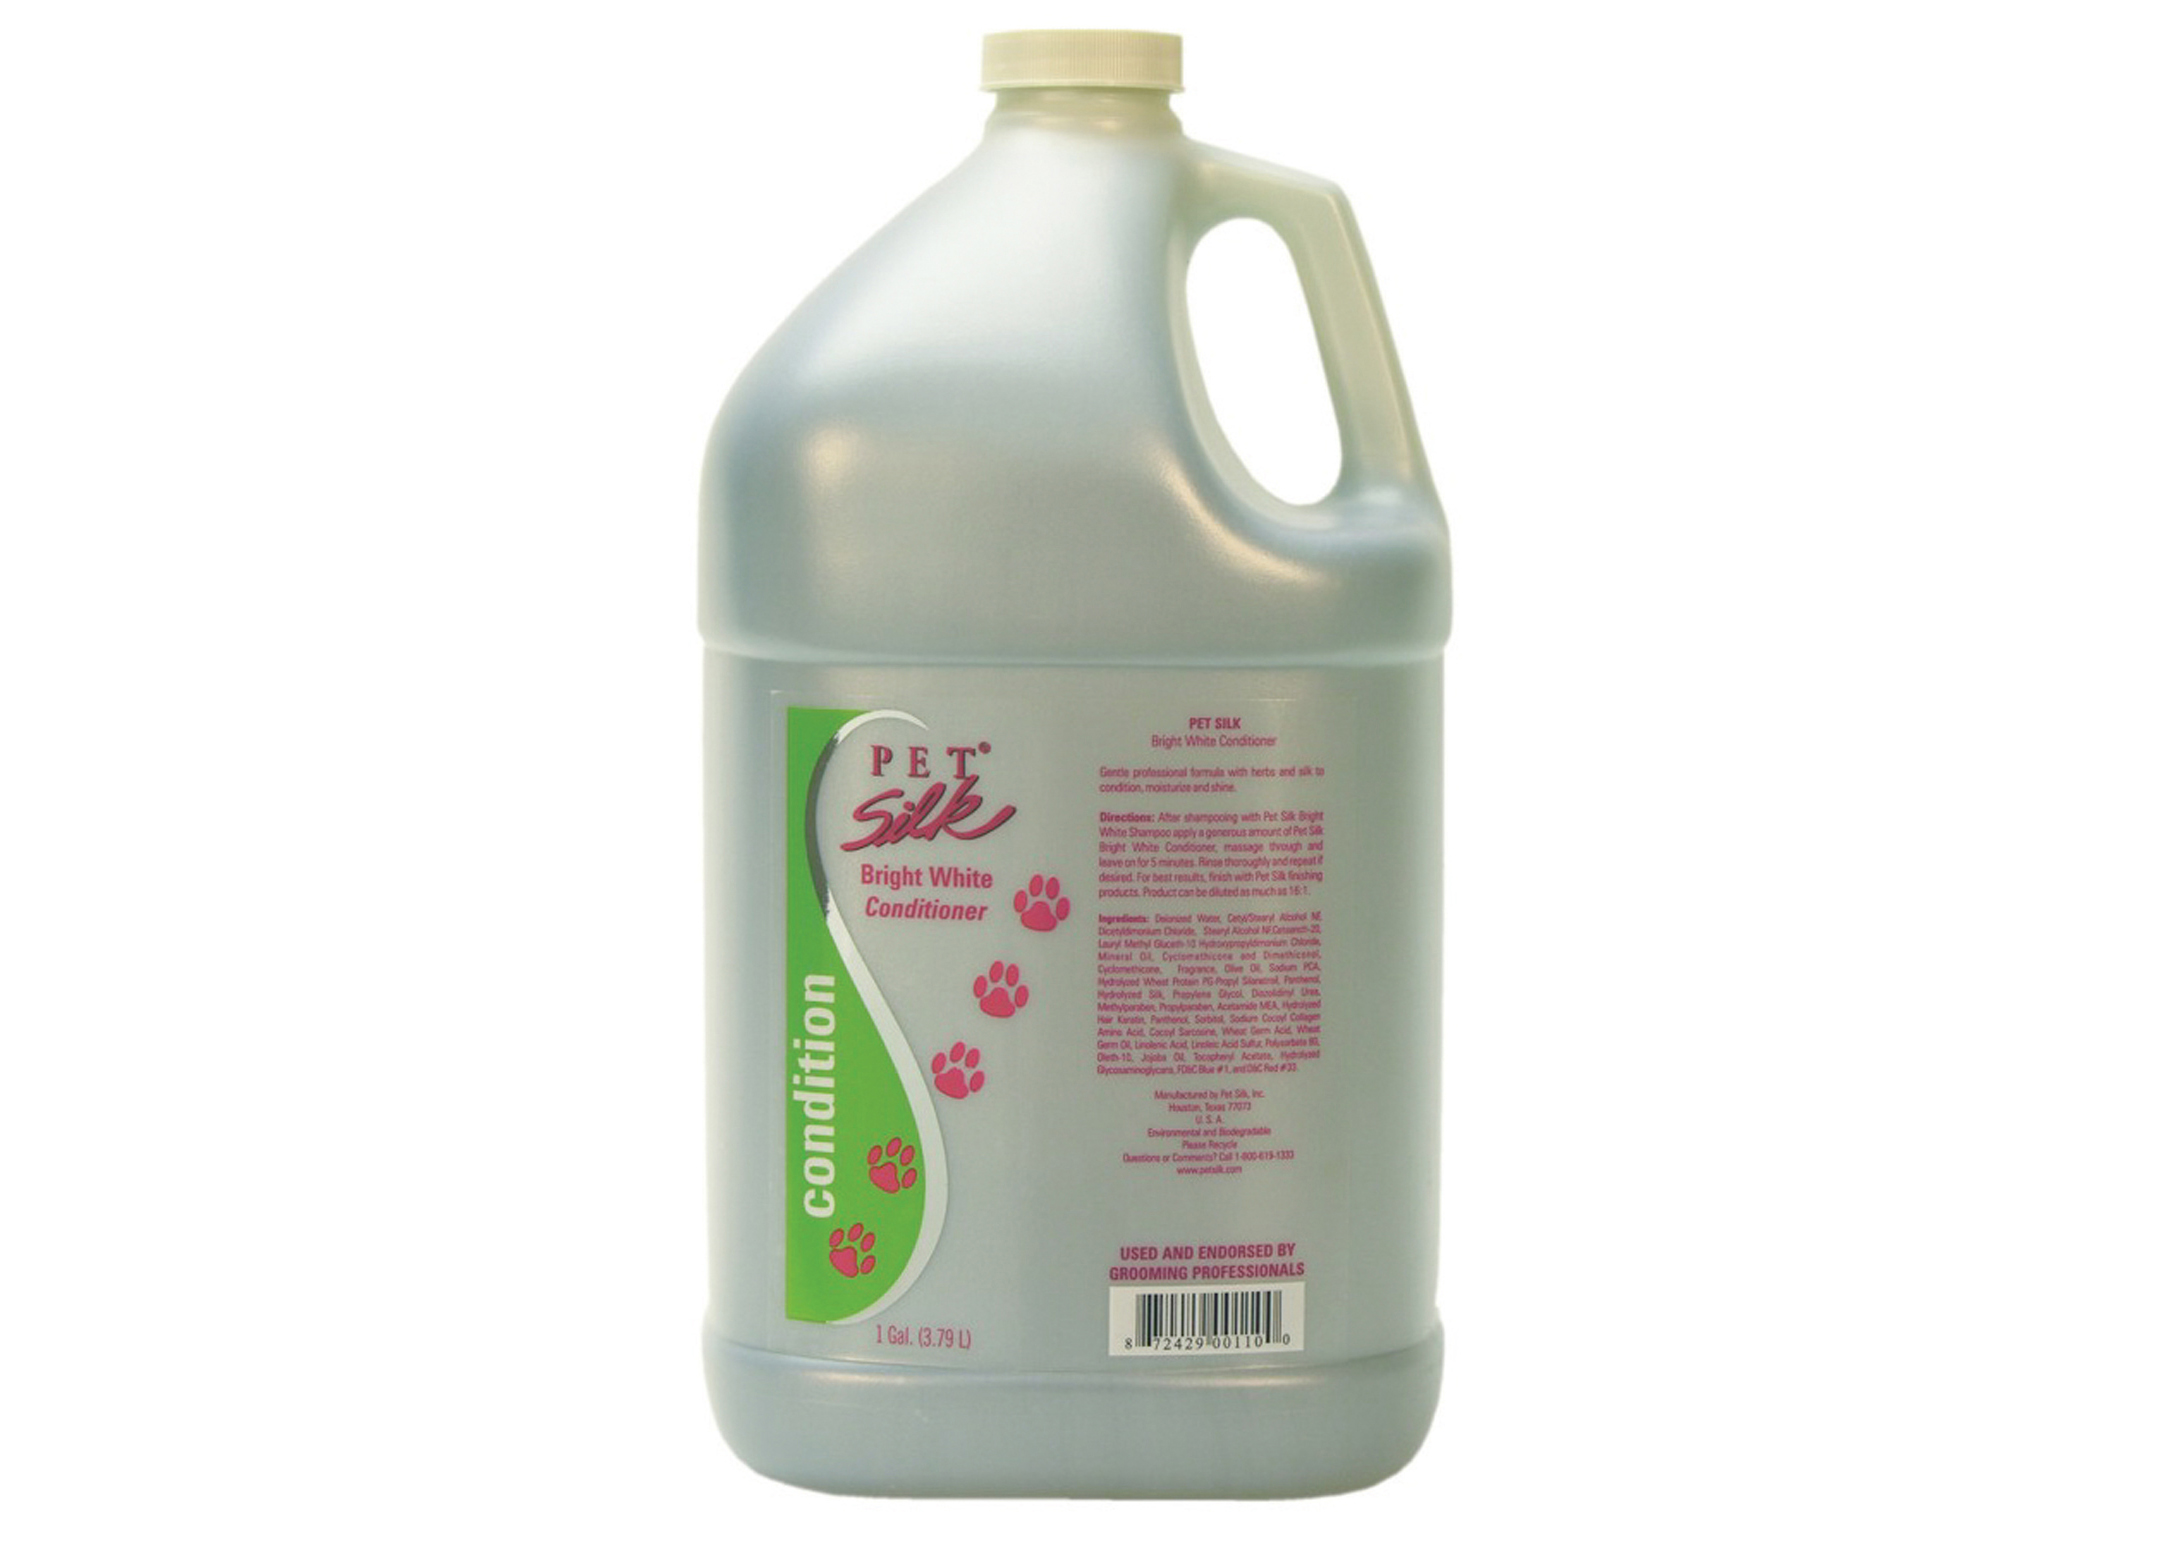 Pet Silk Bright White Conditioner For Dogs, Cats And Horses